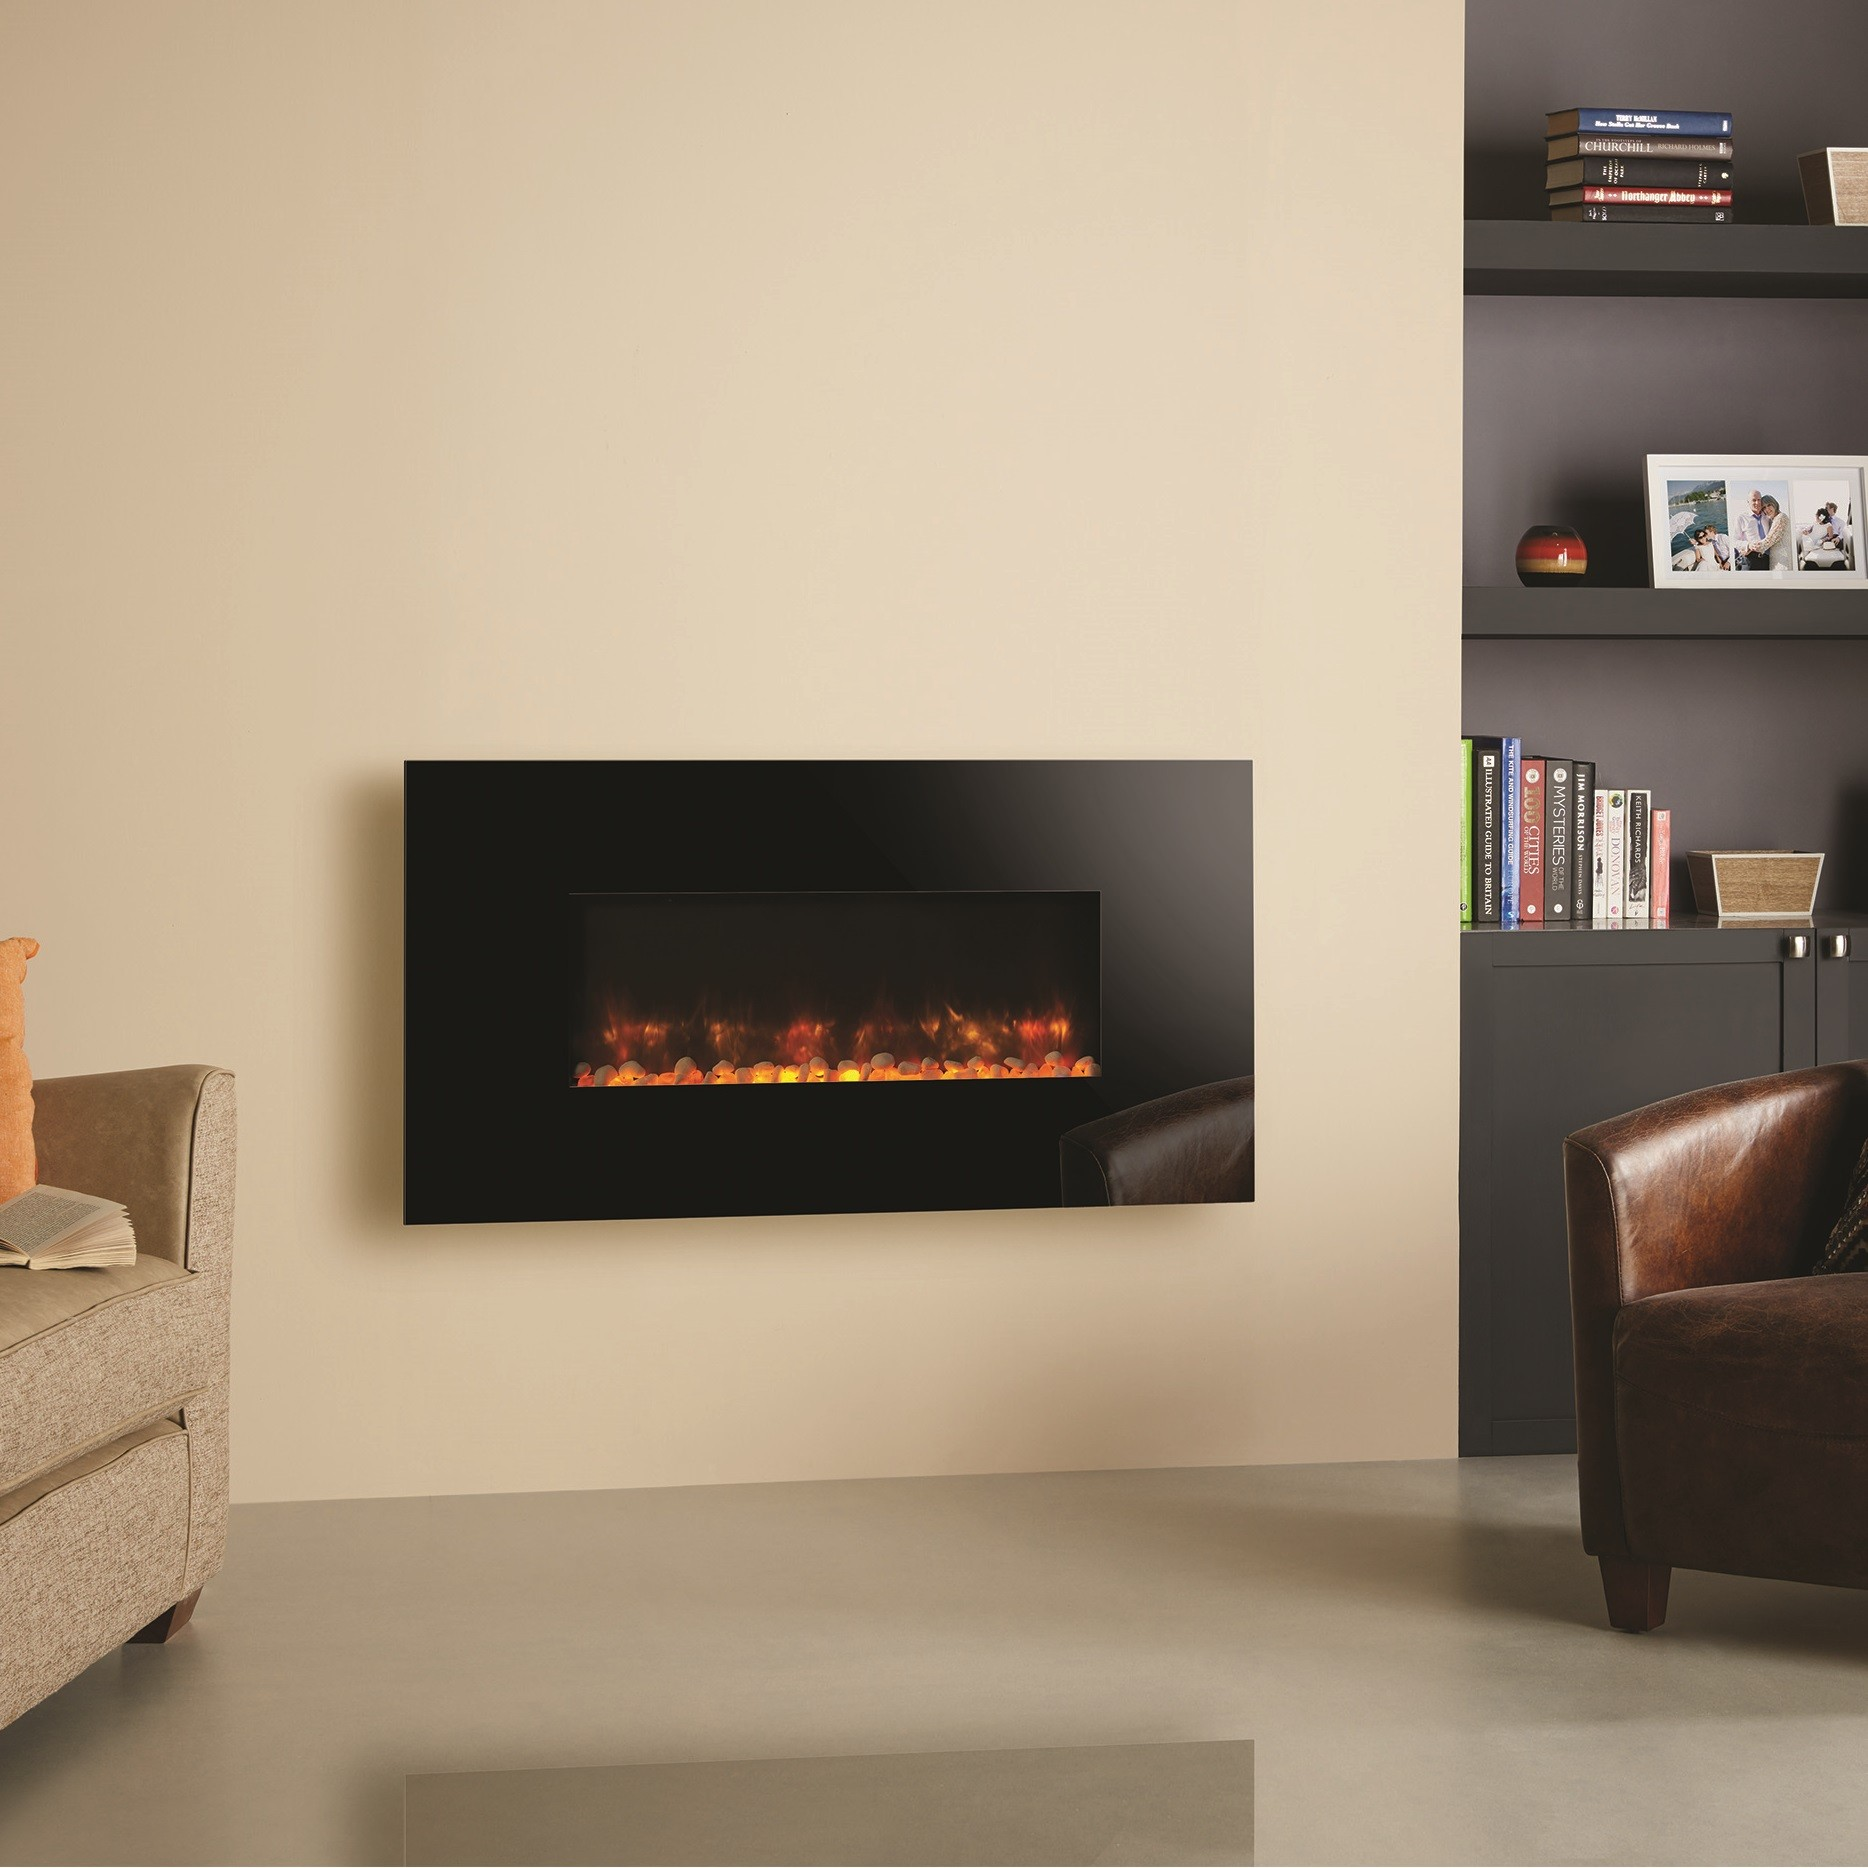 gazco radiance 80w black glass electric wall mounted fire with